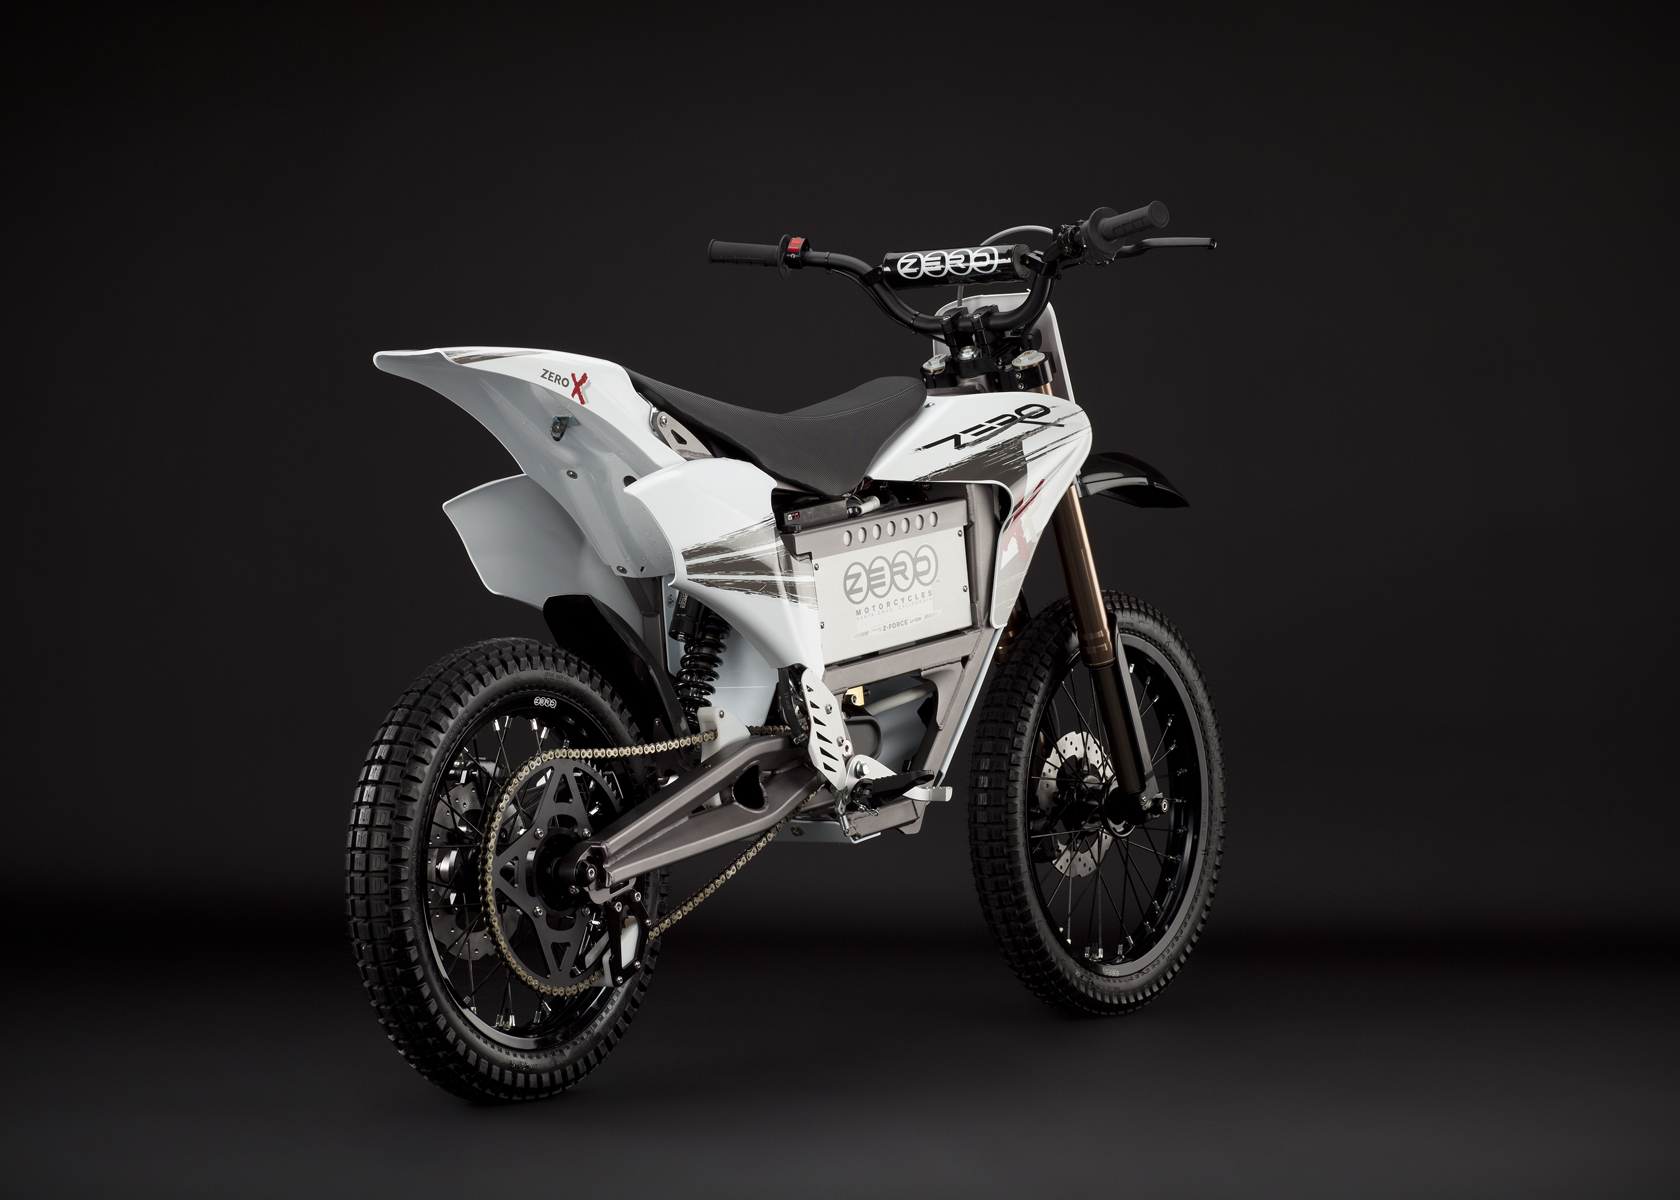 2011 Zero X Electric Motorcycle: Rear View, Dirt Model